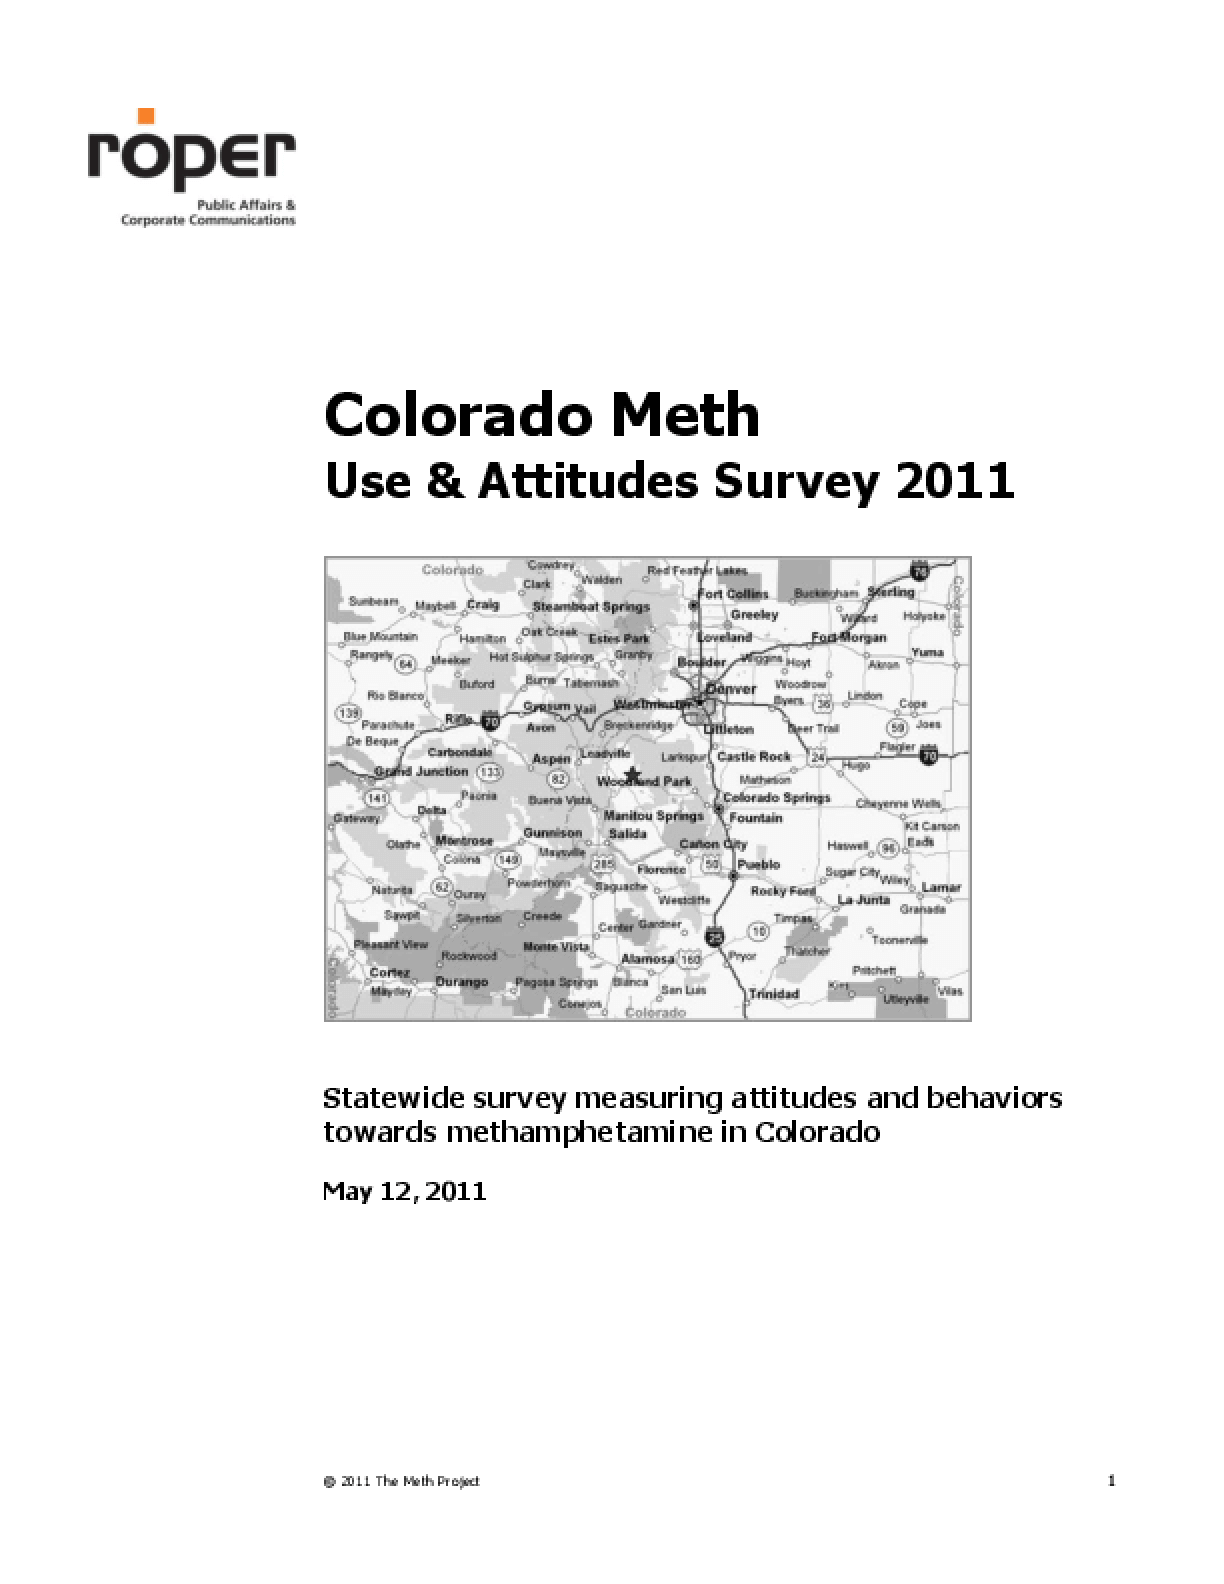 Colorado Meth Use & Attitudes Survey 2011